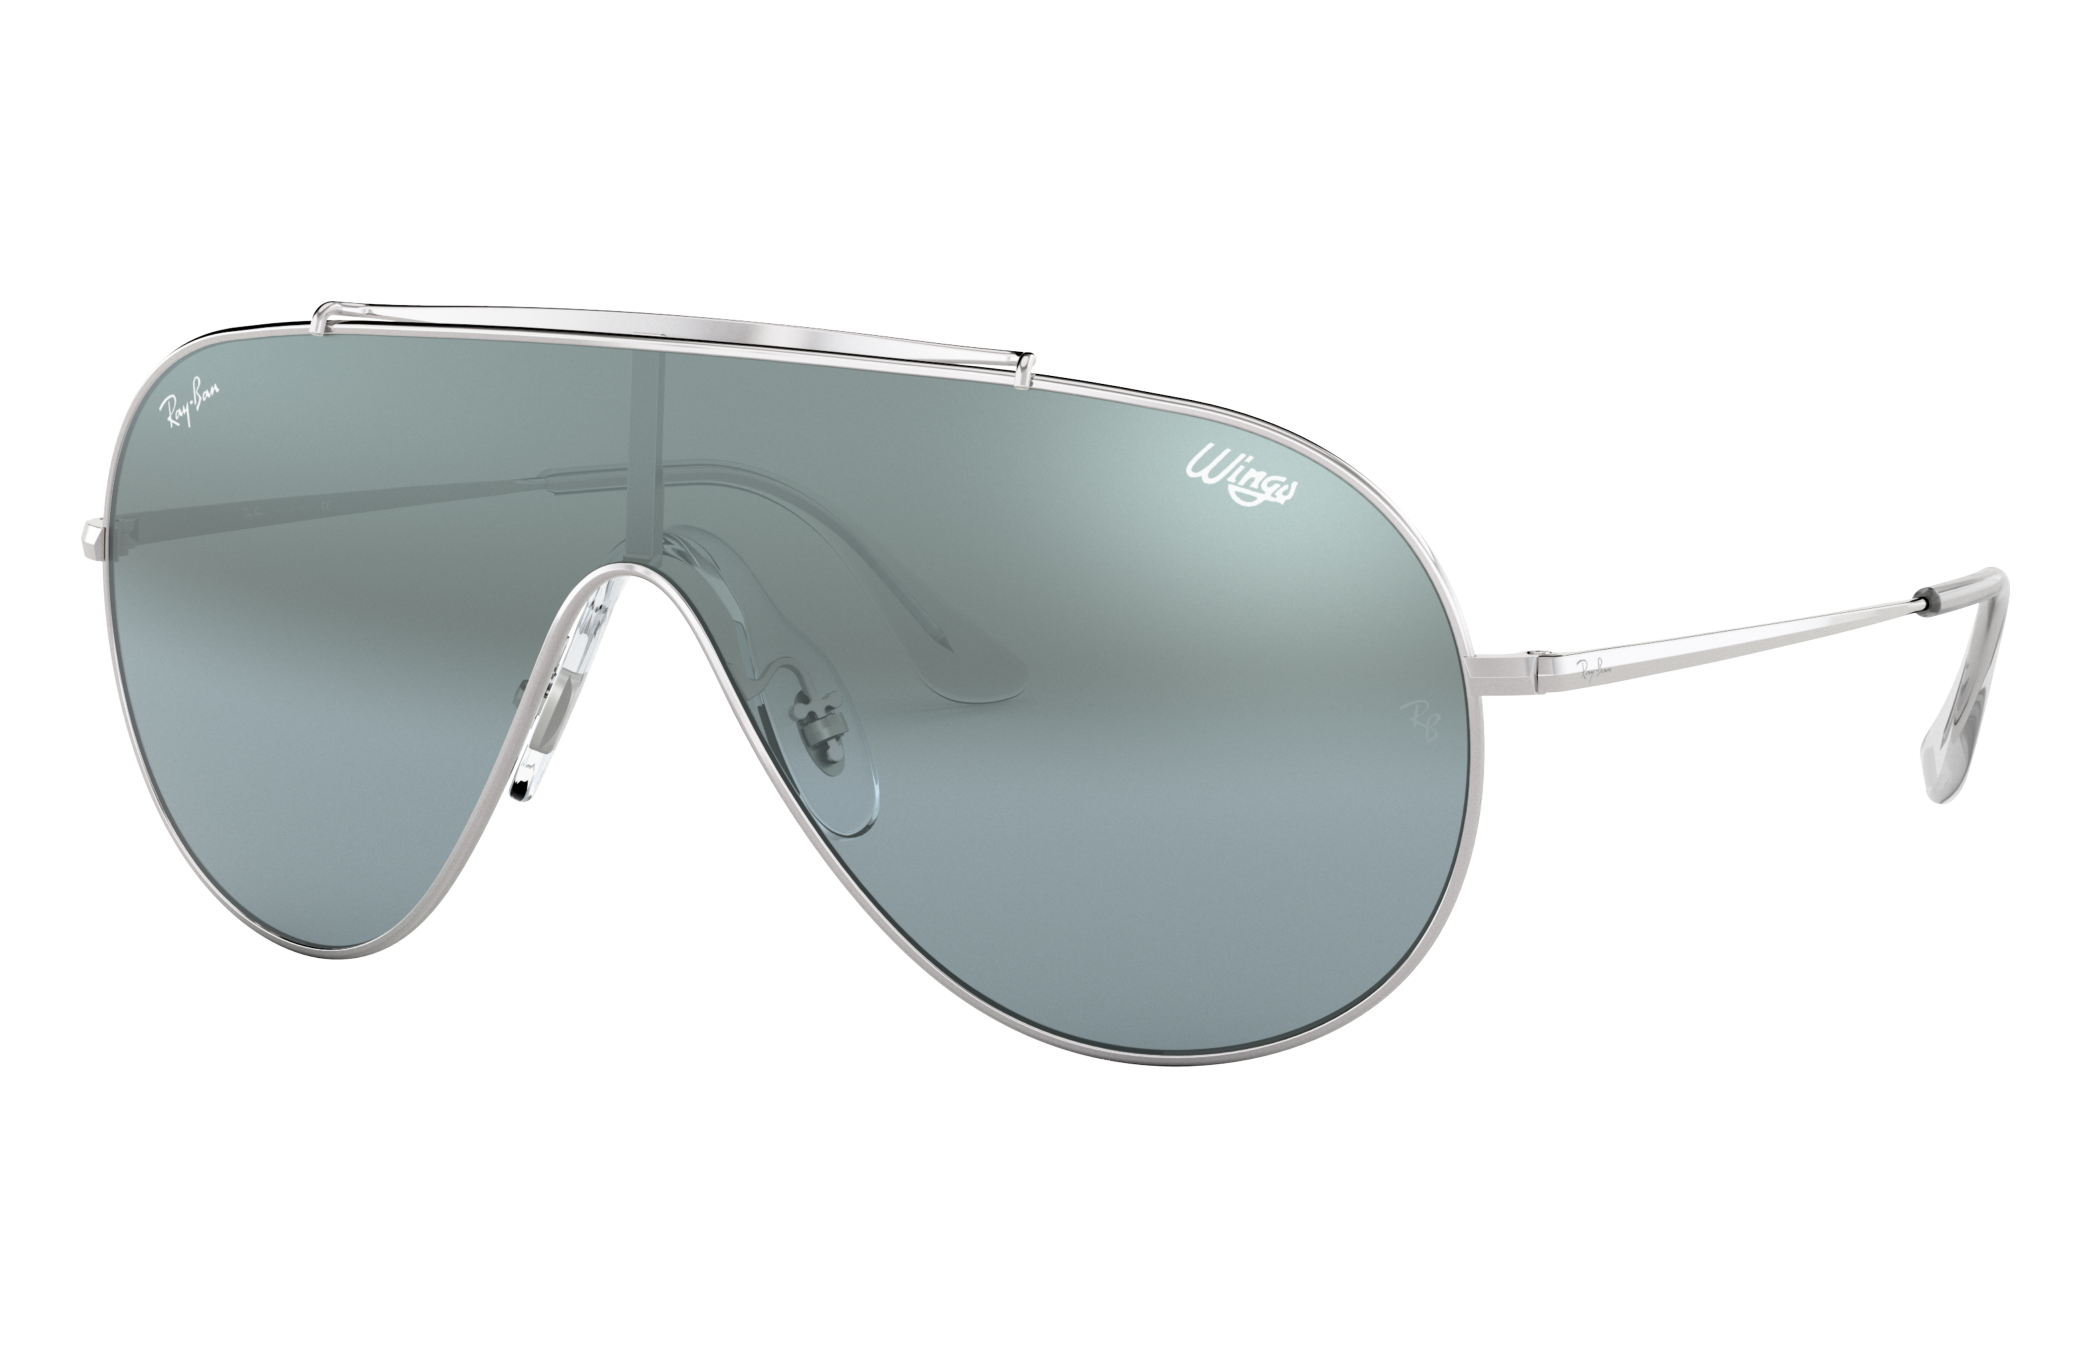 Ray-Ban Wings Silver, Blue Lenses - RB3597